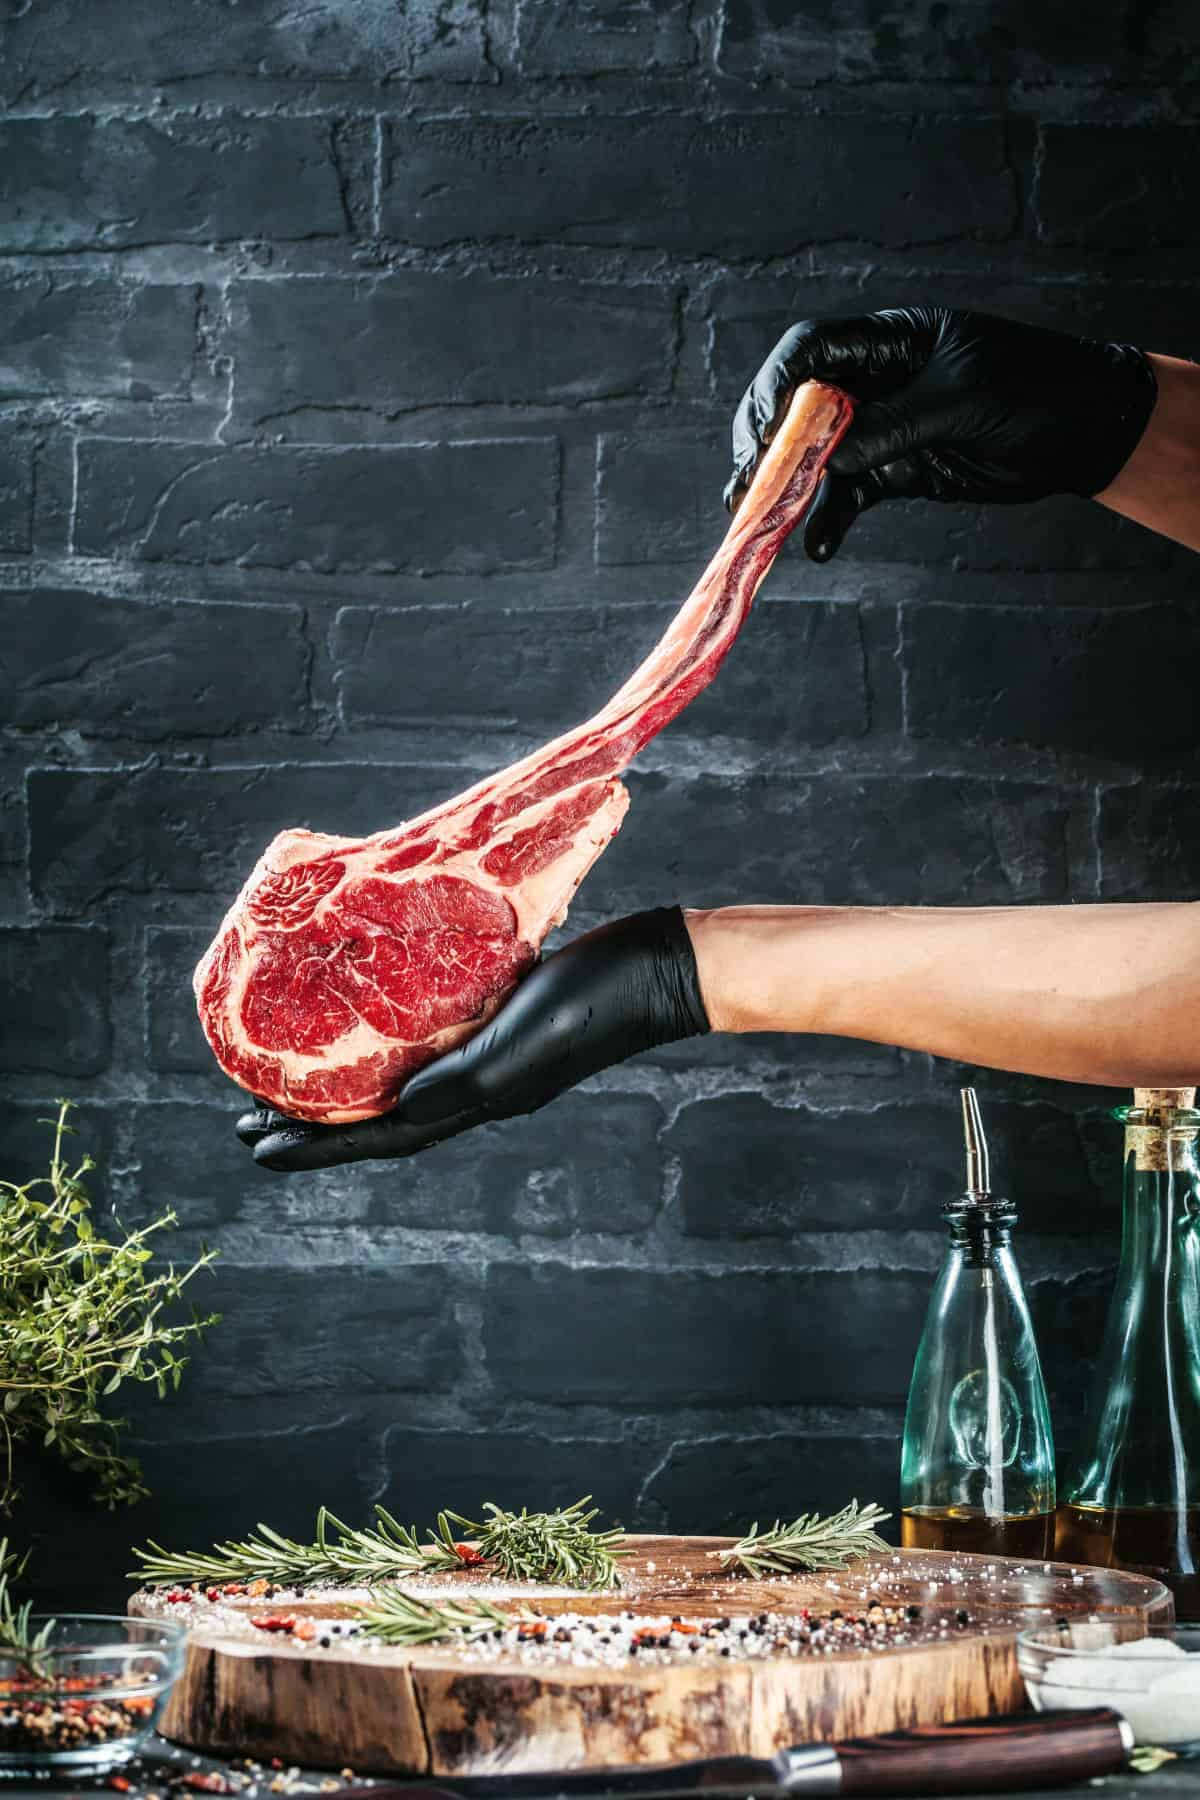 A butchers gloved hands holding up a large tomahawk steak